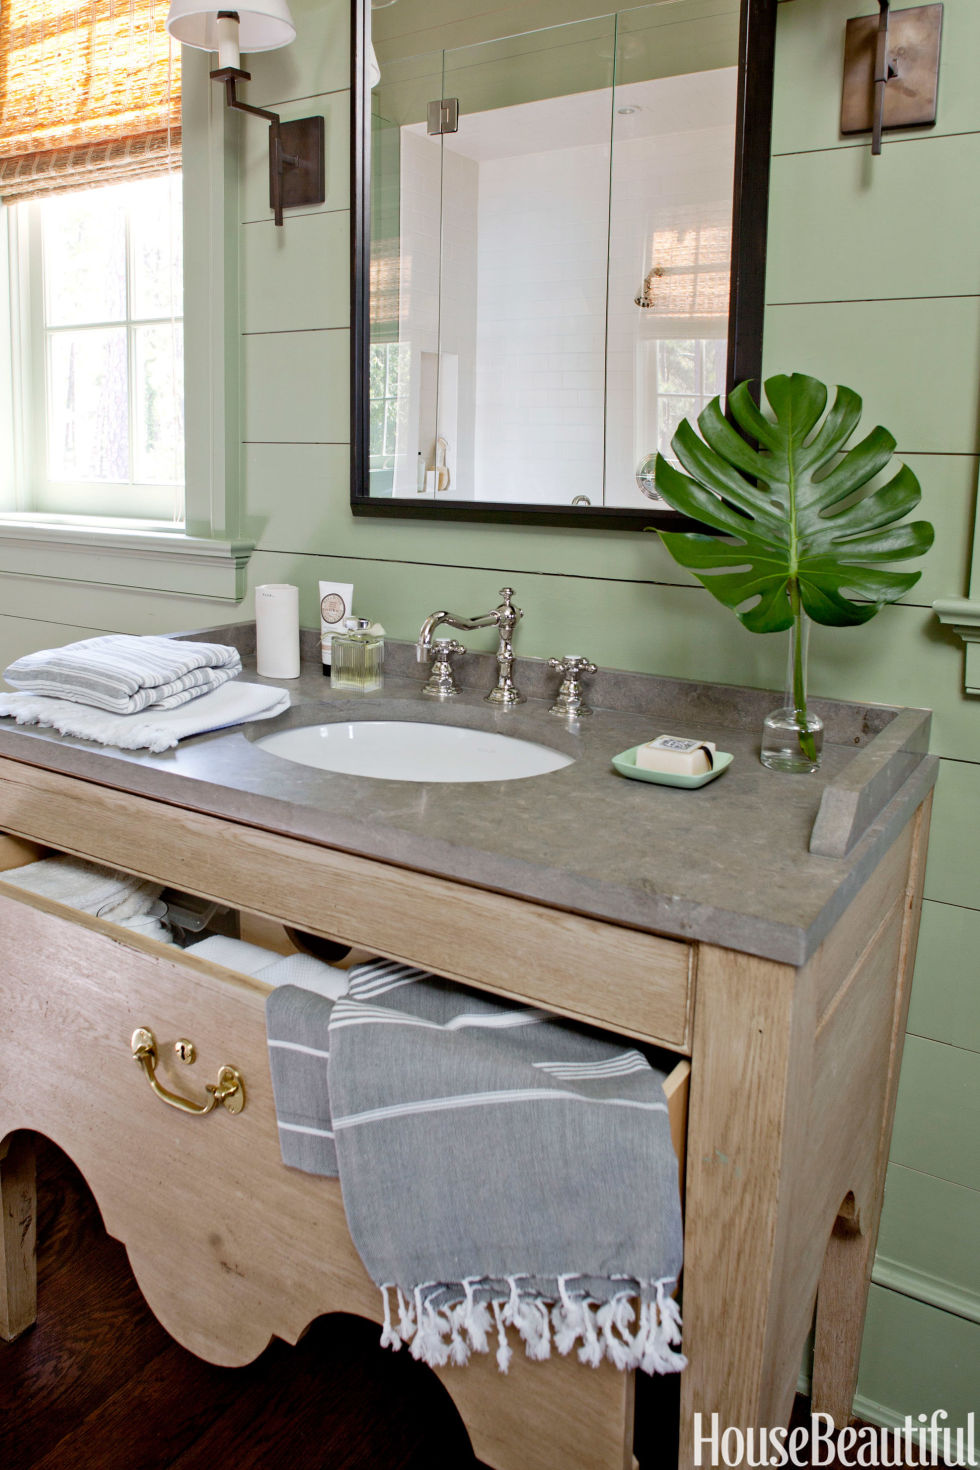 Bathroom Decorating Ideas In Green 25 small bathroom design ideas - small bathroom solutions